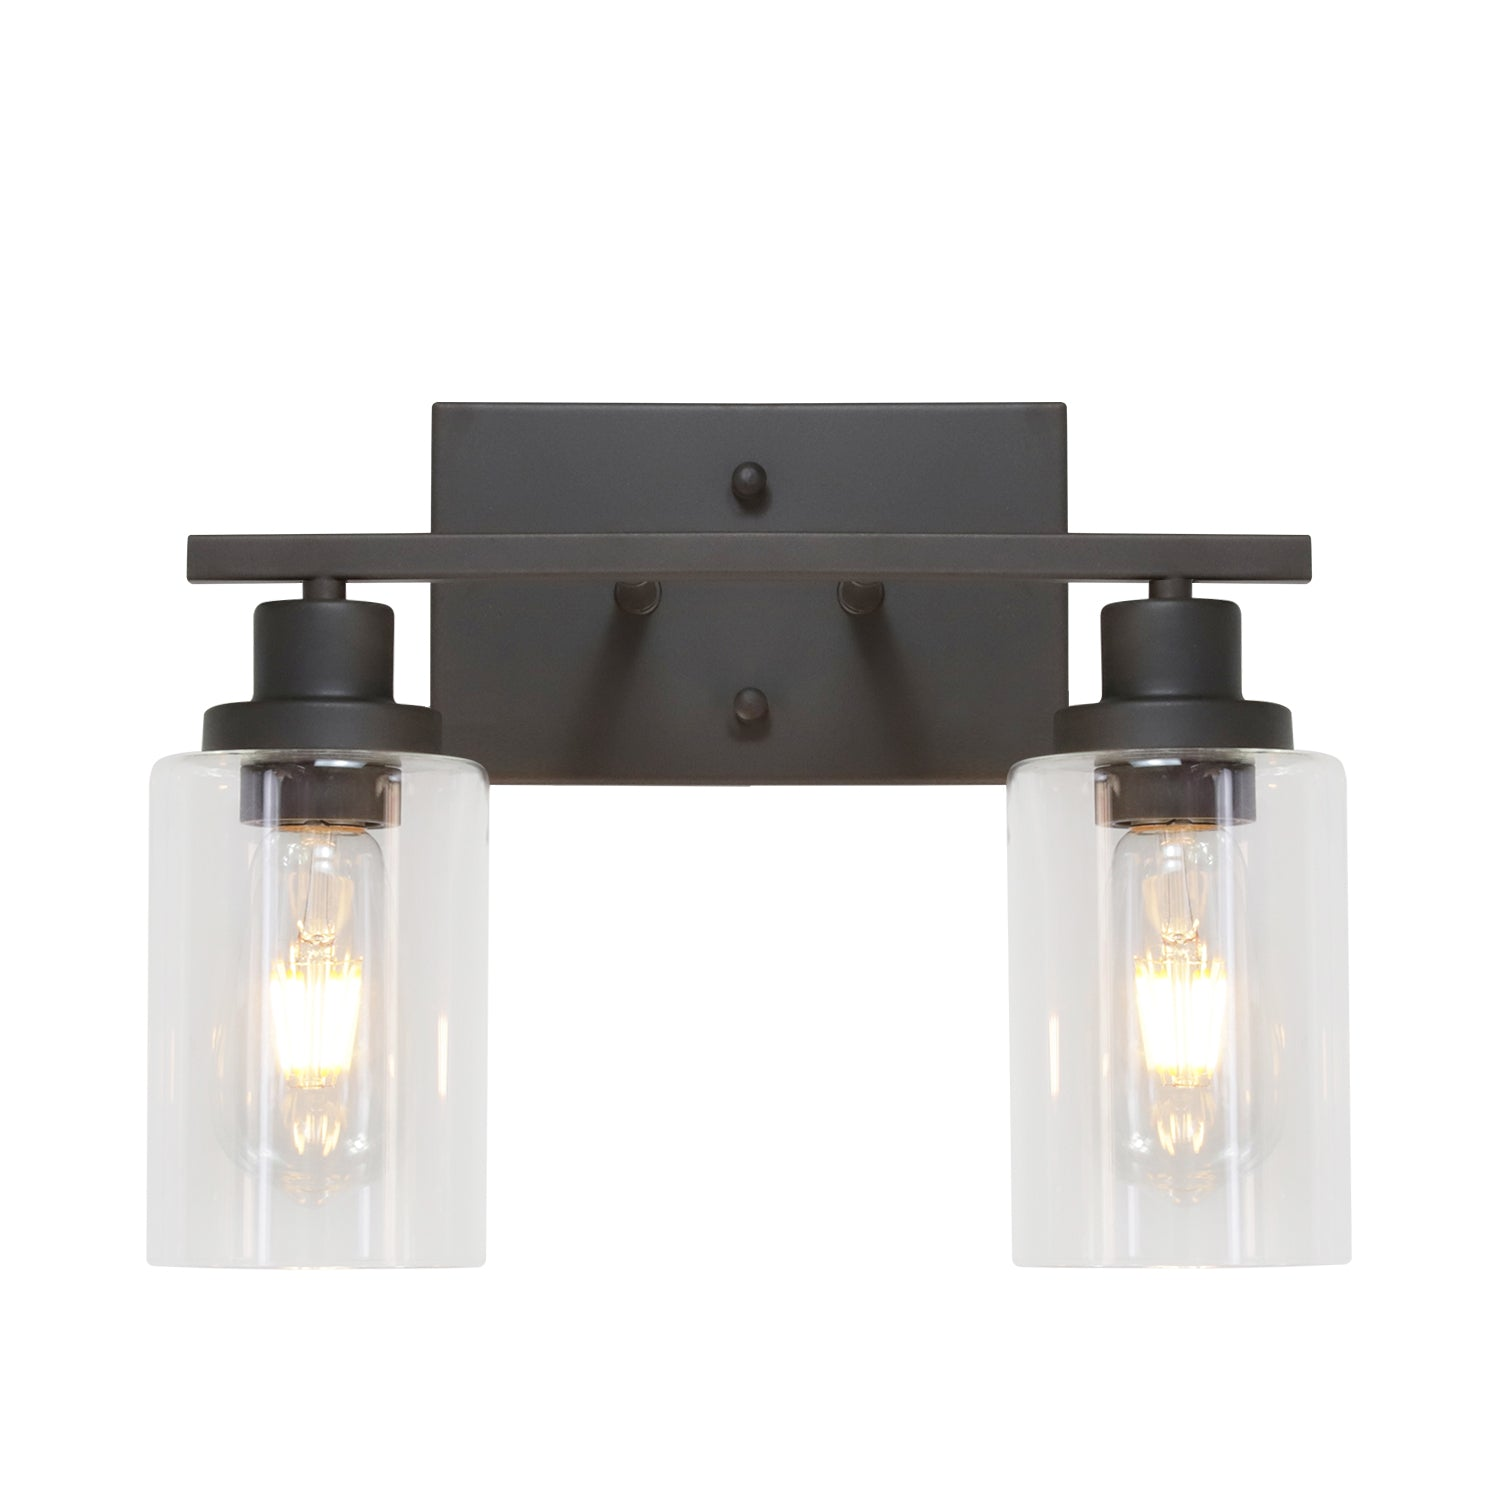 Wall Sconces Wall Lamp Bathroom Sconces Wall Sconce Lighting 2 Light Indoor Wall Sconces Rustic Wall Sconces Farmhouse Wall Sconce Bonlicht Lighting